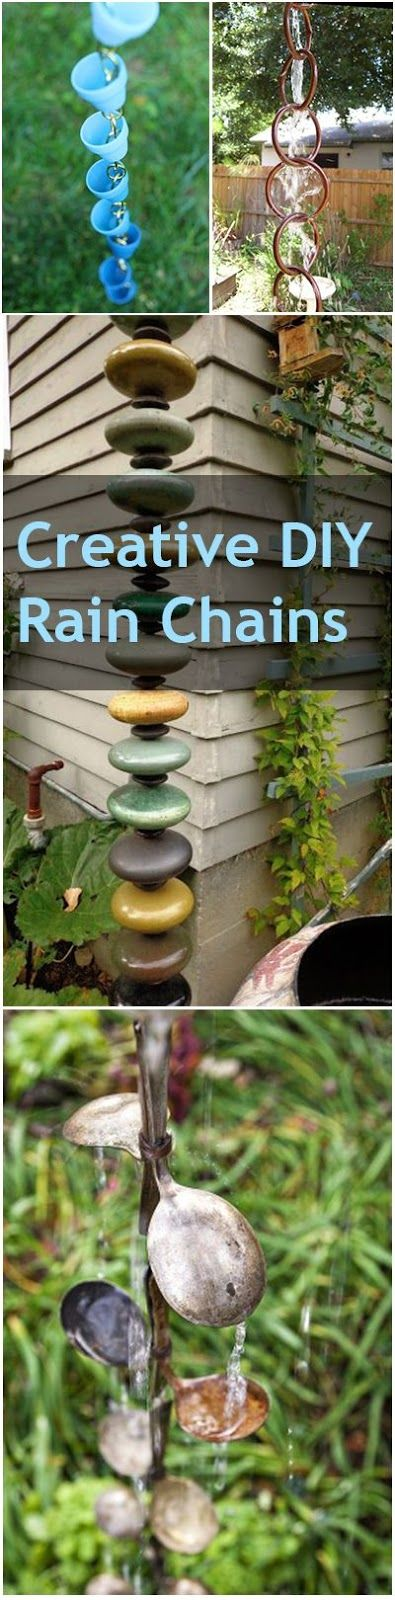 10 creative diy rain chain ideas - Diy Garden Ideas